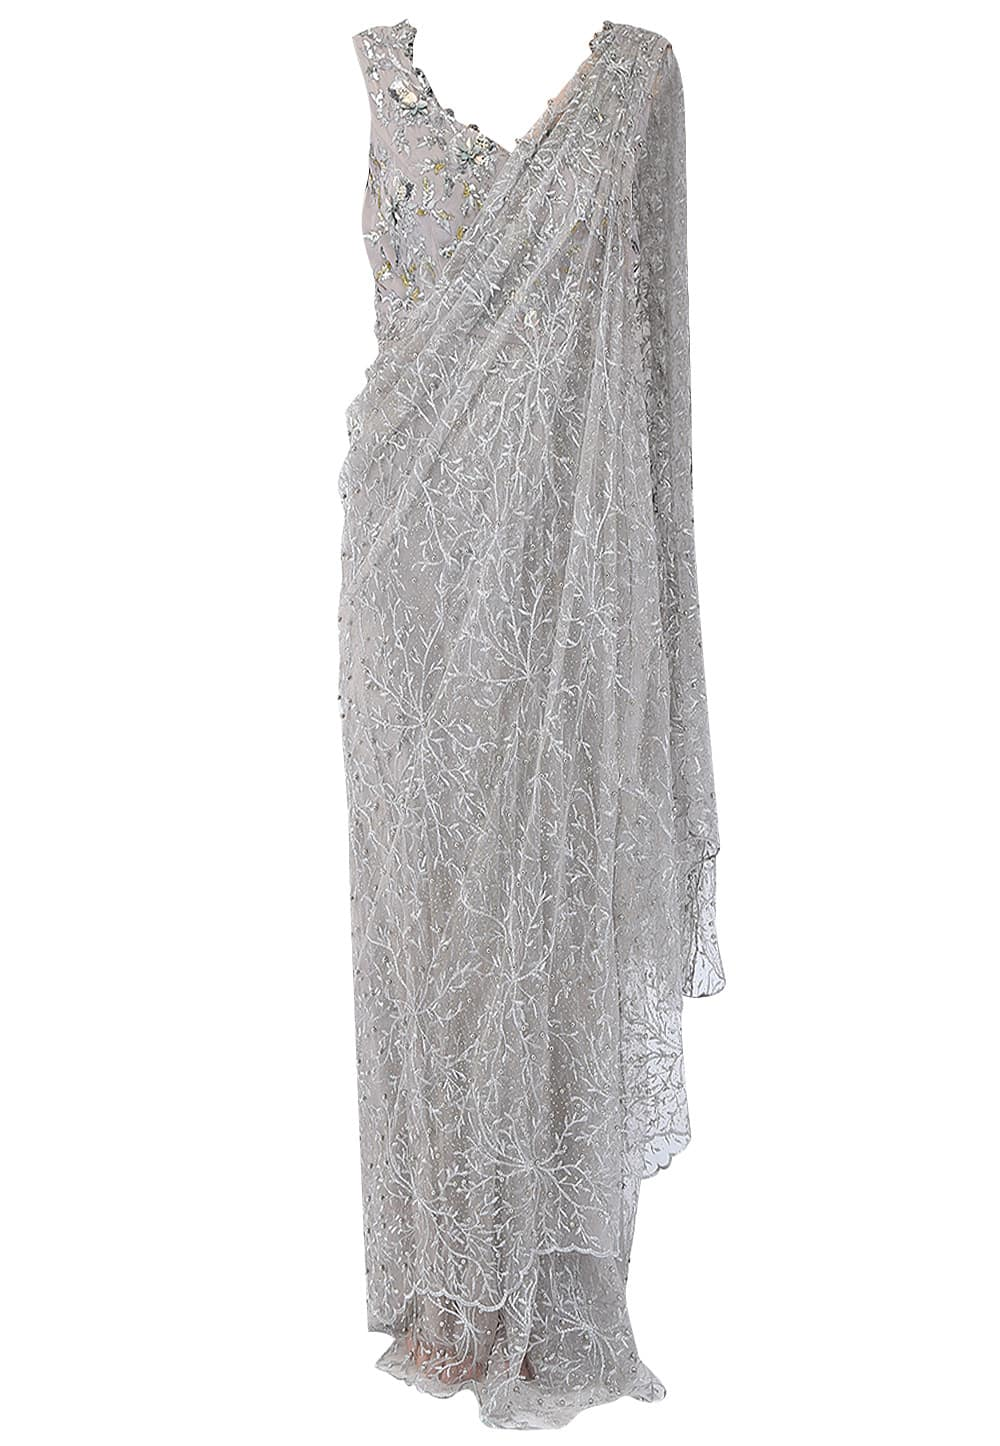 Mist Grey Embroidered Drape Saree Gown Available Only At Ibfw